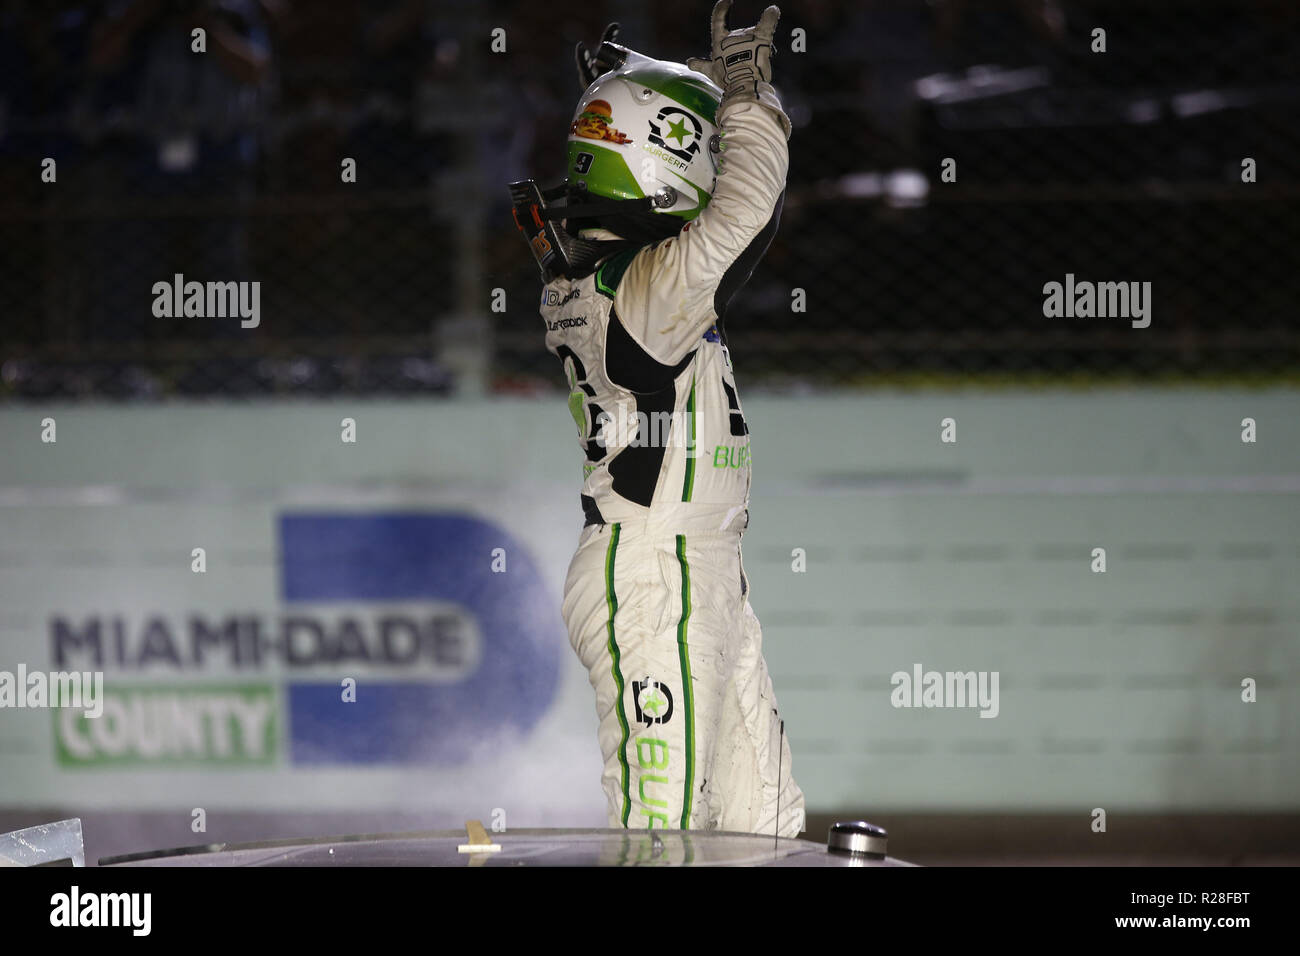 Homestead, Florida, USA. 17th Nov, 2018. Tyler Reddick (9) takes the checkered flag and wins the 2018 NASCAR Xfinity Championship following the Ford 300 at Homestead-Miami Speedway in Homestead, Florida. (Credit Image: © Justin R. Noe Asp Inc/ASP) Credit: ZUMA Press, Inc./Alamy Live News - Stock Image